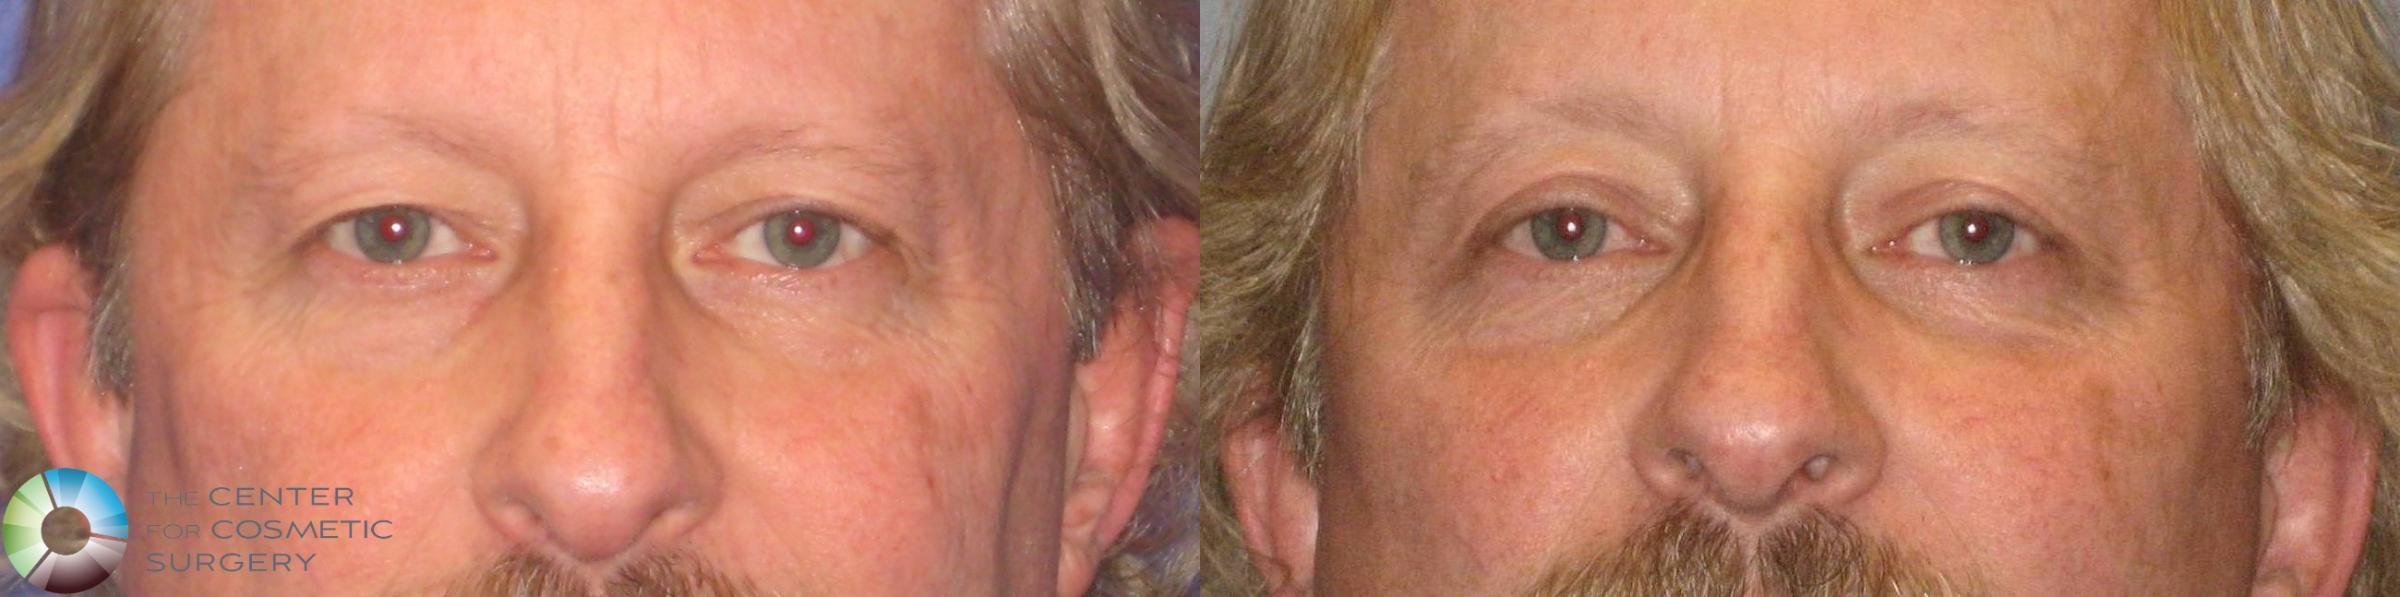 Eyelid Lift Case 304 Before & After View #1 | Golden, CO | The Center for Cosmetic Surgery